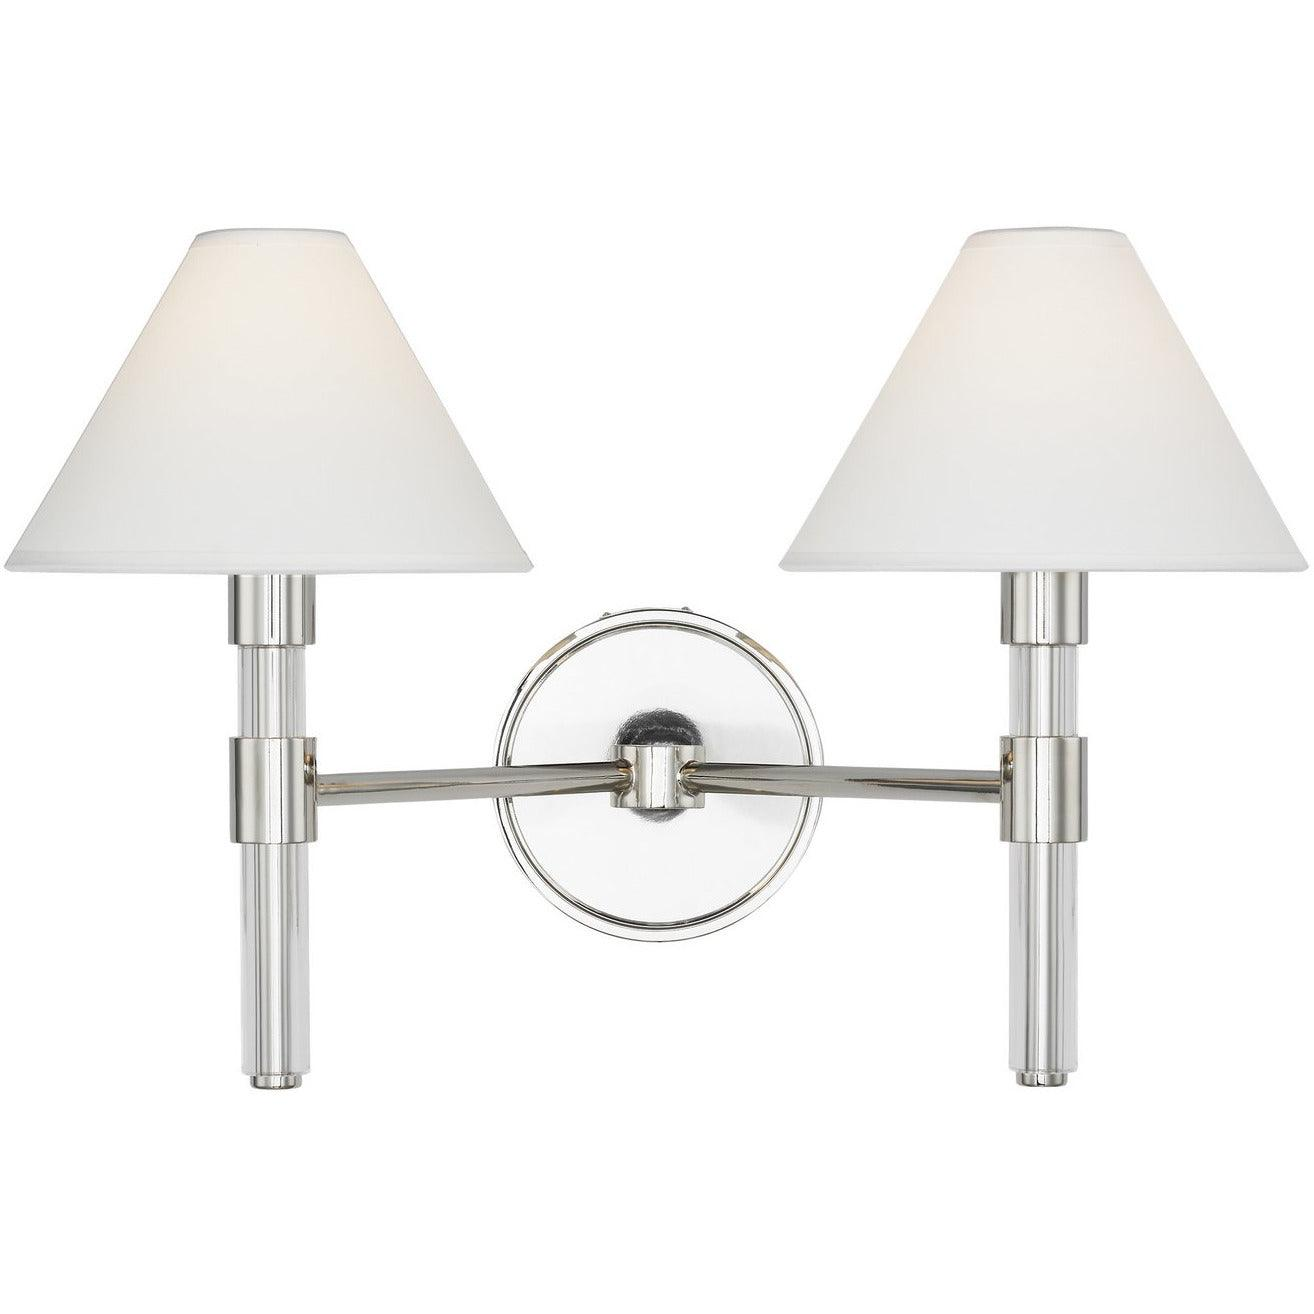 Lauren by Ralph Lauren - LV1032 - Generation Lighting - Robert - Polished Nickel